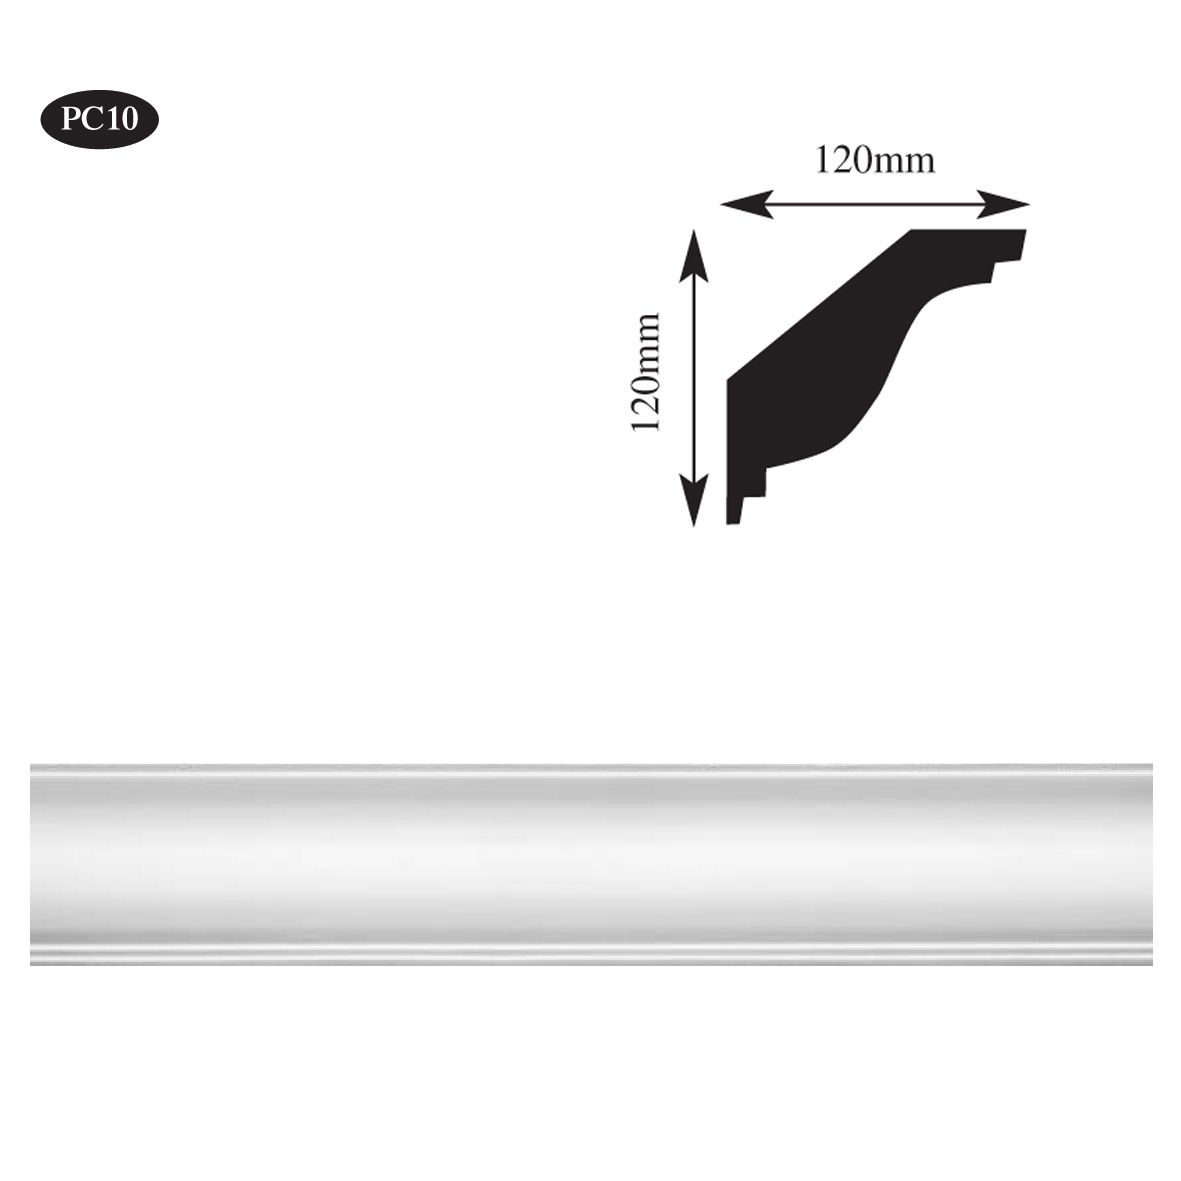 Pc10 Ogee Amp Step Plaster Coving Wm Boyle Interior Finishes